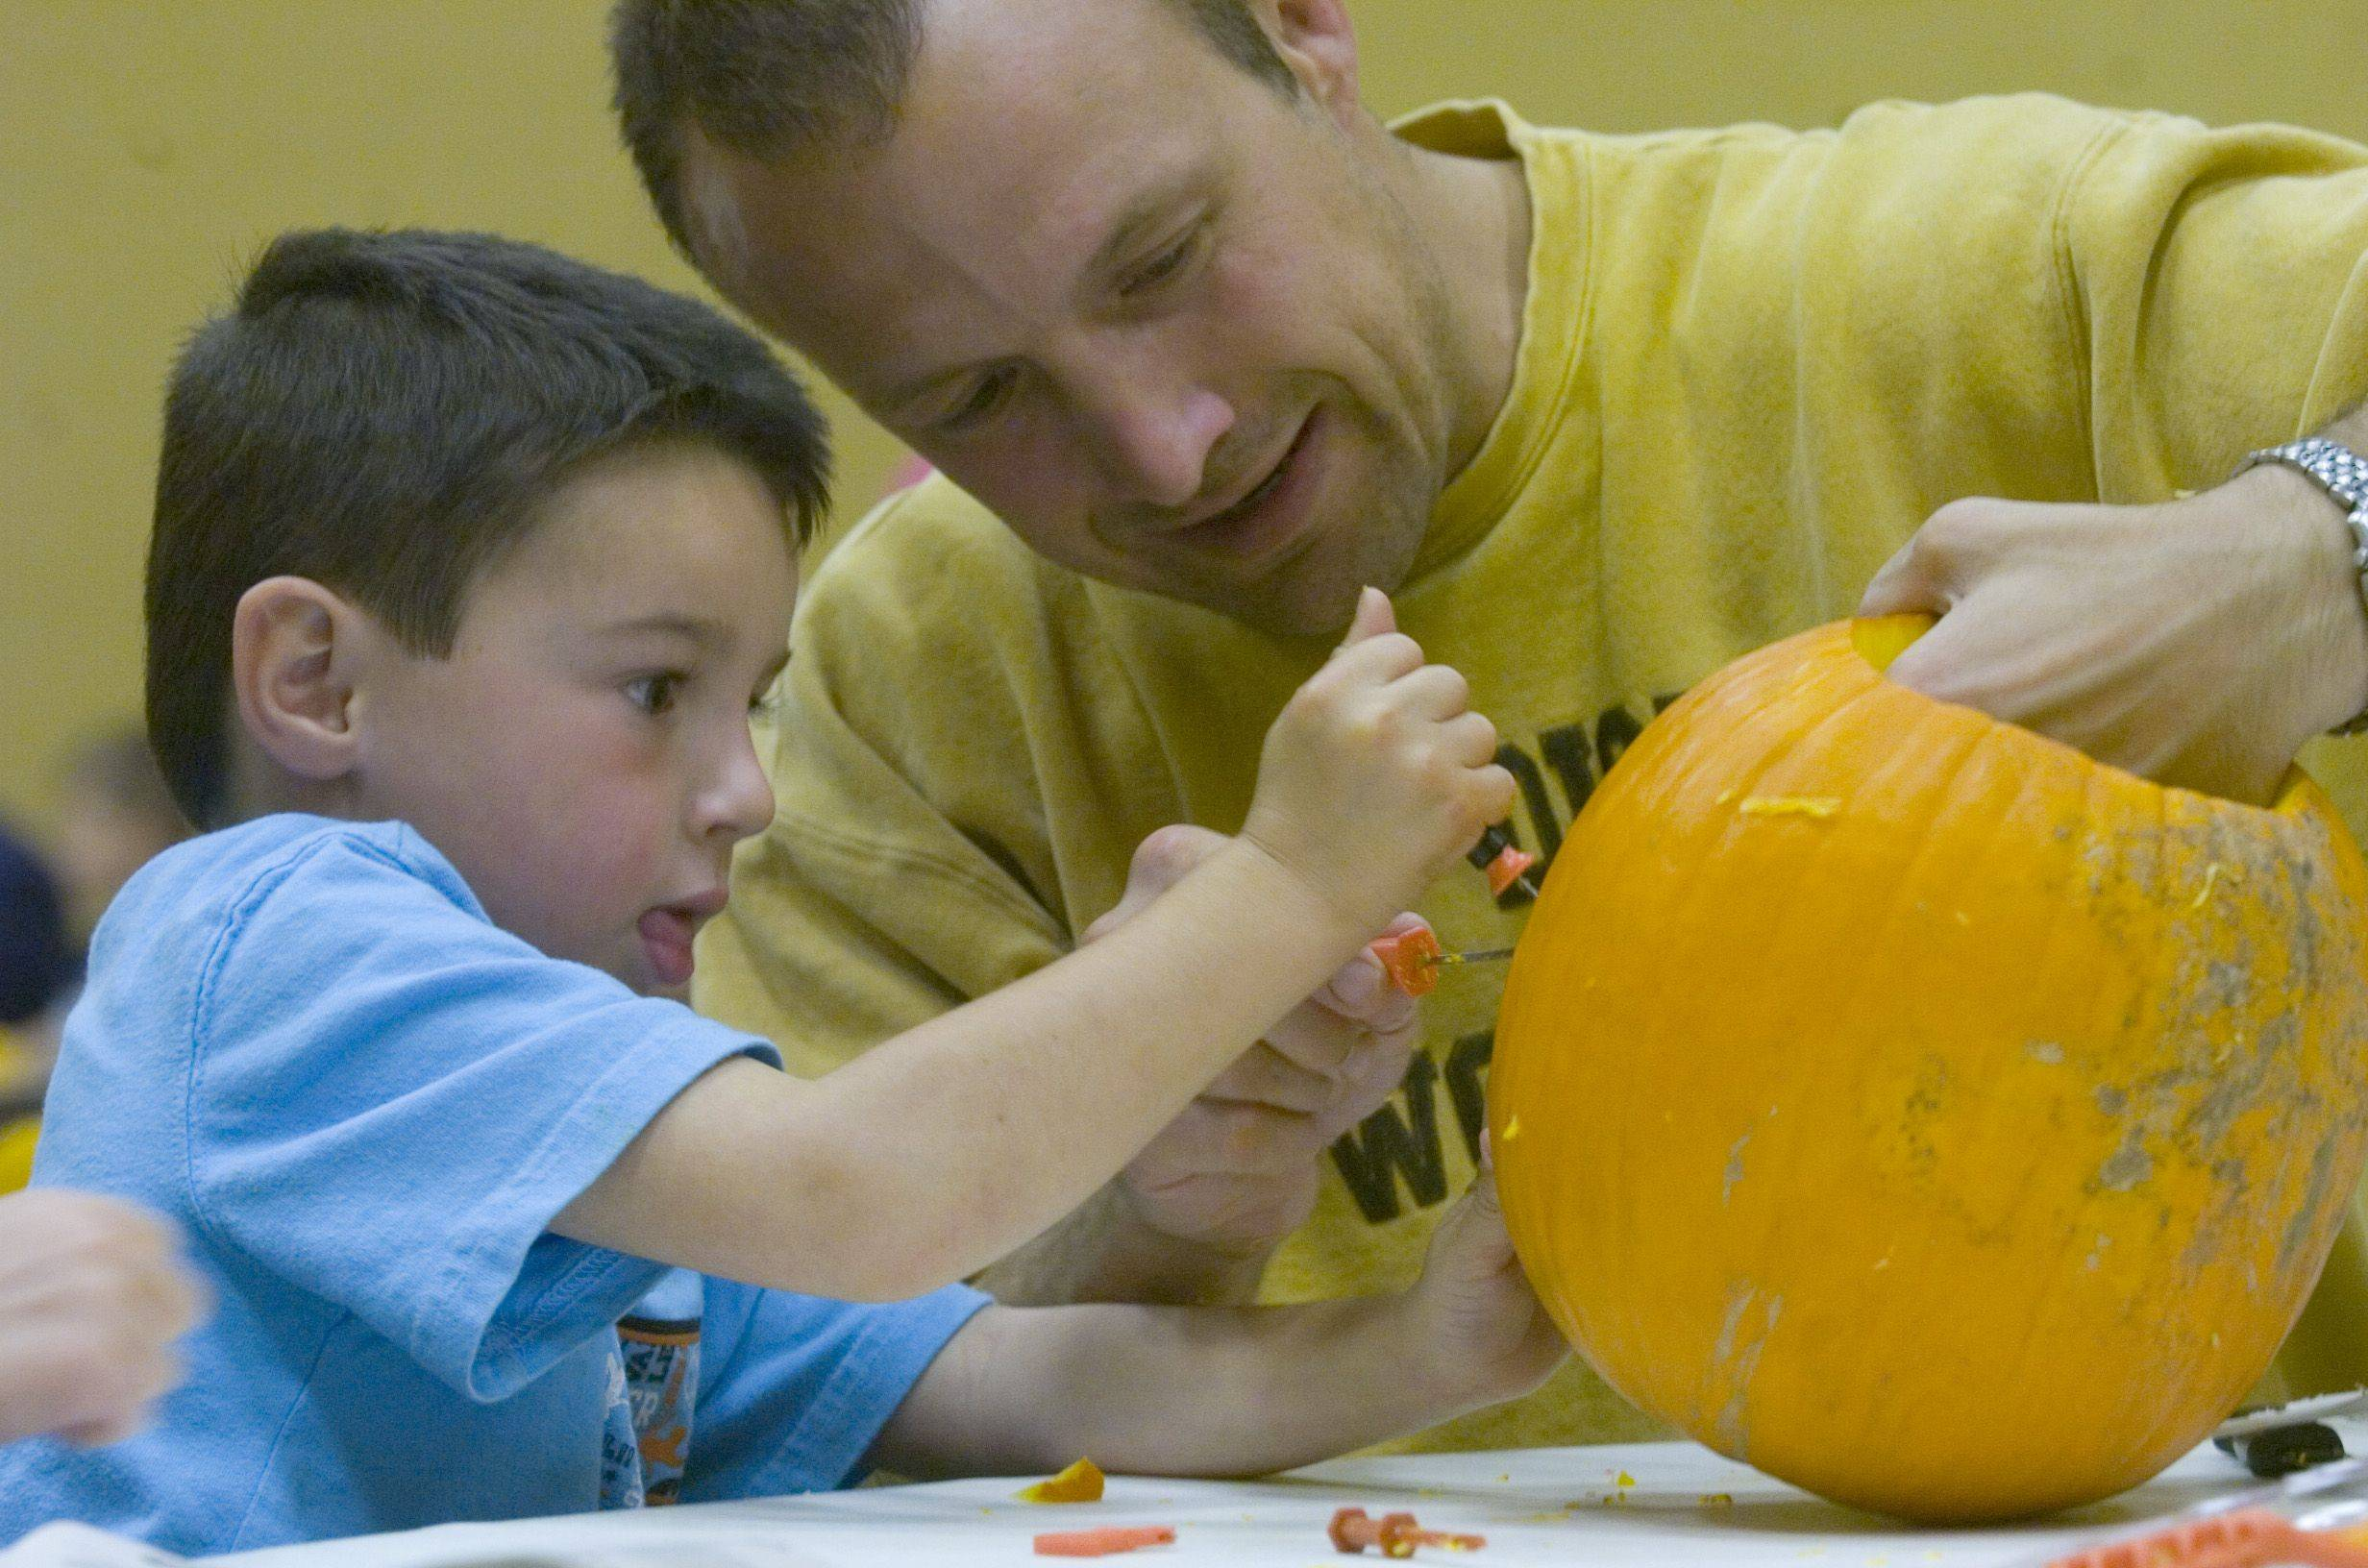 Five-year-old Sammy Wederich of St. Charles narrows in on his scary monster jack o' lantern with his dad, Bob Werderich, at Hosanna! Lutheren Church's 22nd-annual Dad Pumpkin Carving Night Thursday evening. The preschool students at Hosanna! went on a field trip to Goebbert's Farm last week to pick out their pumpkins for carving night.